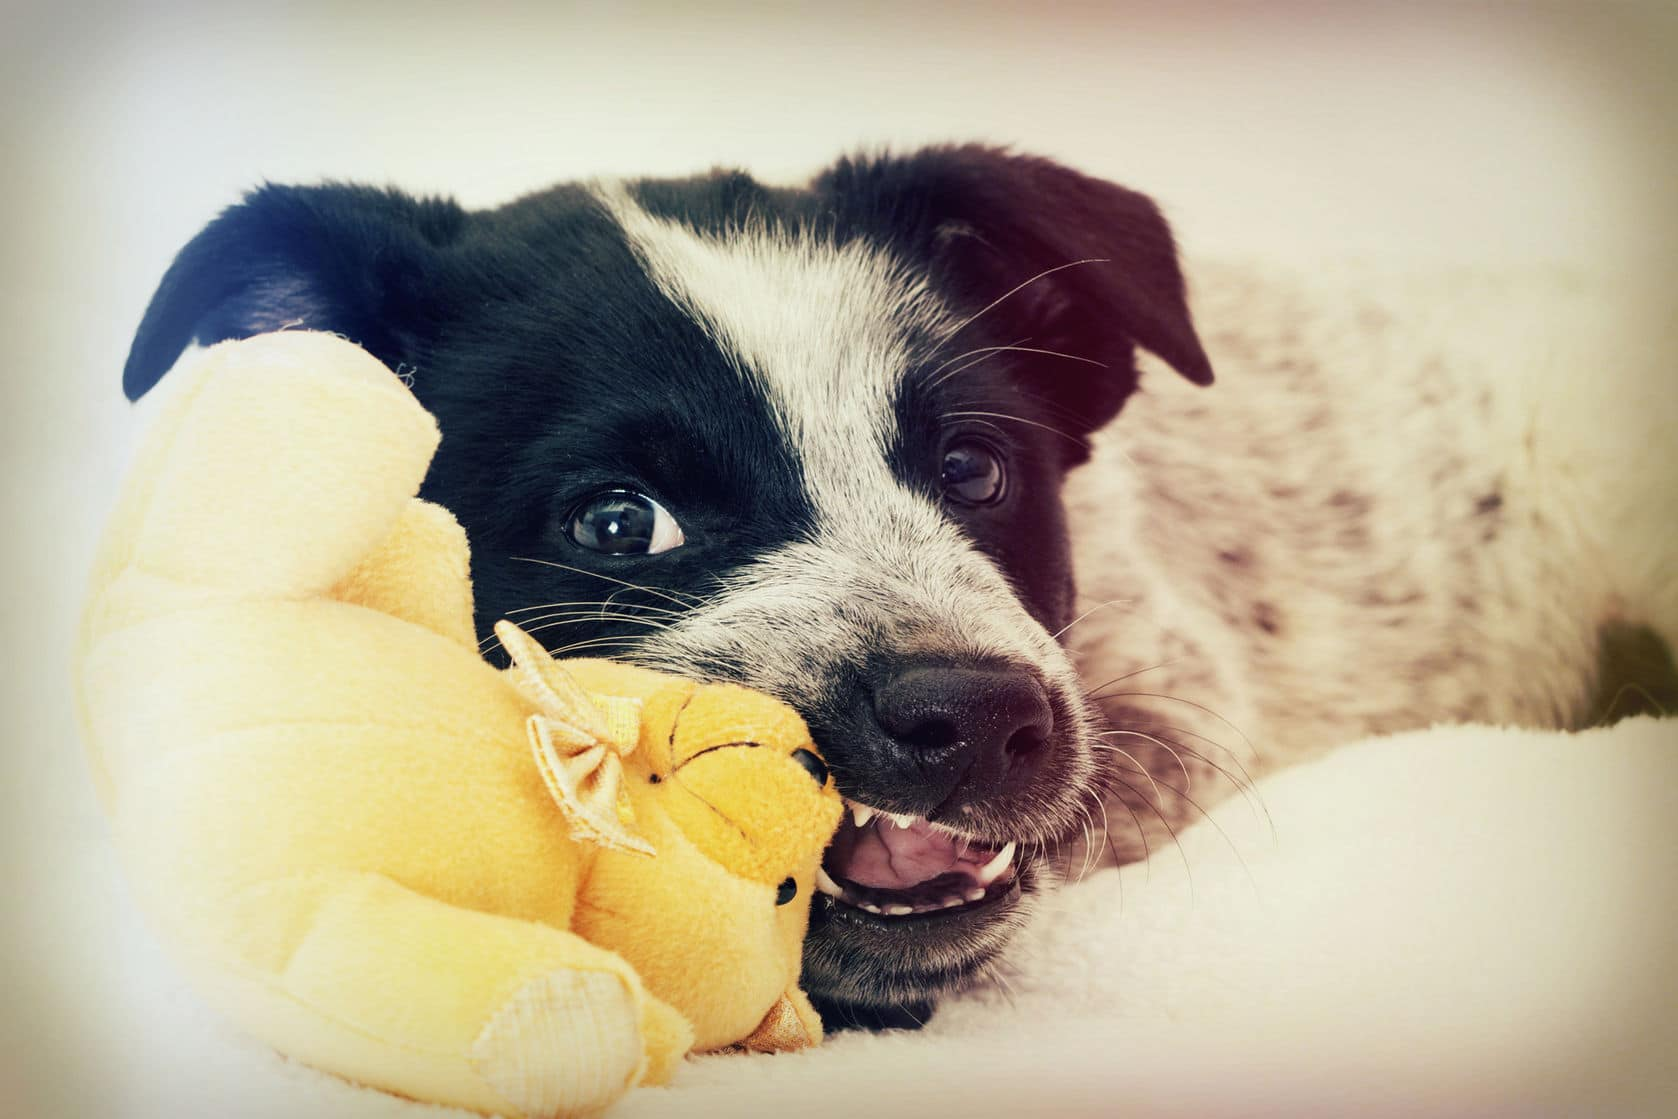 50679720 - funny puppy chewing on a toy